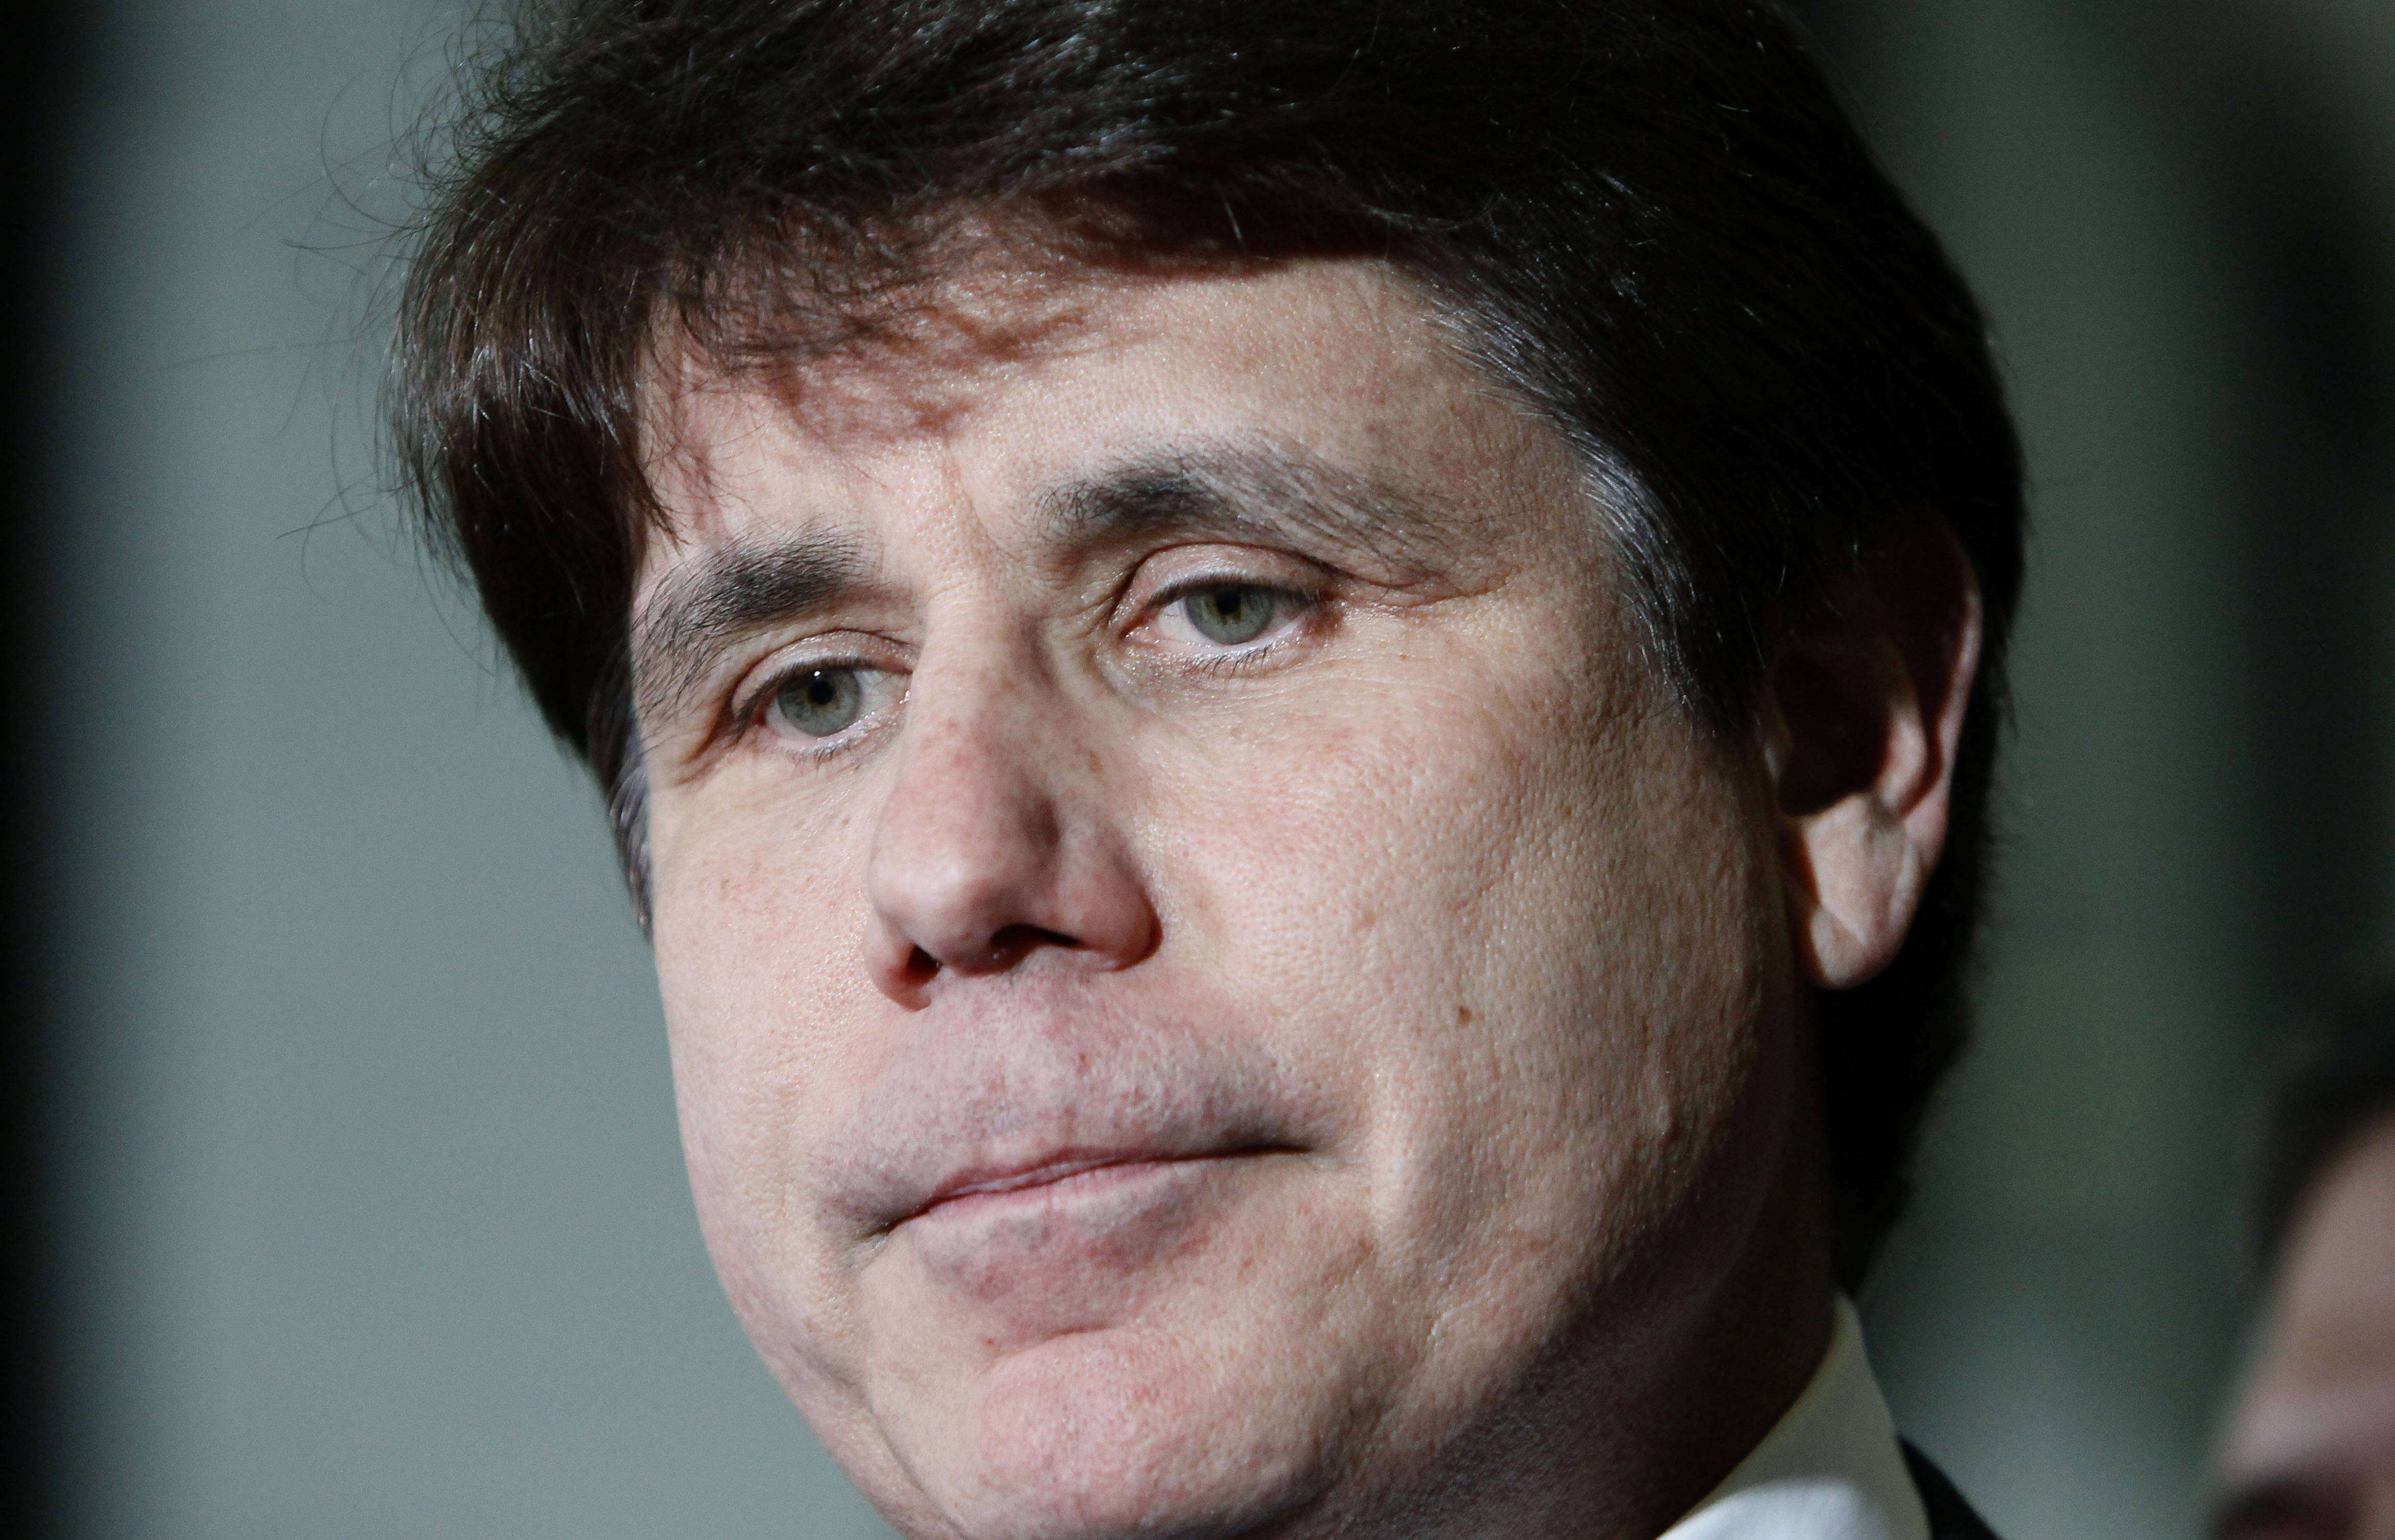 Overdue paperwork could land Rod Blagojevich in hot water with a judge after prosecutors complained that the former governor hasn't met conditions keeping him out of jail as he awaits sentencing on convictions including that he tried to sell President Barack Obama's vacated Senate seat.